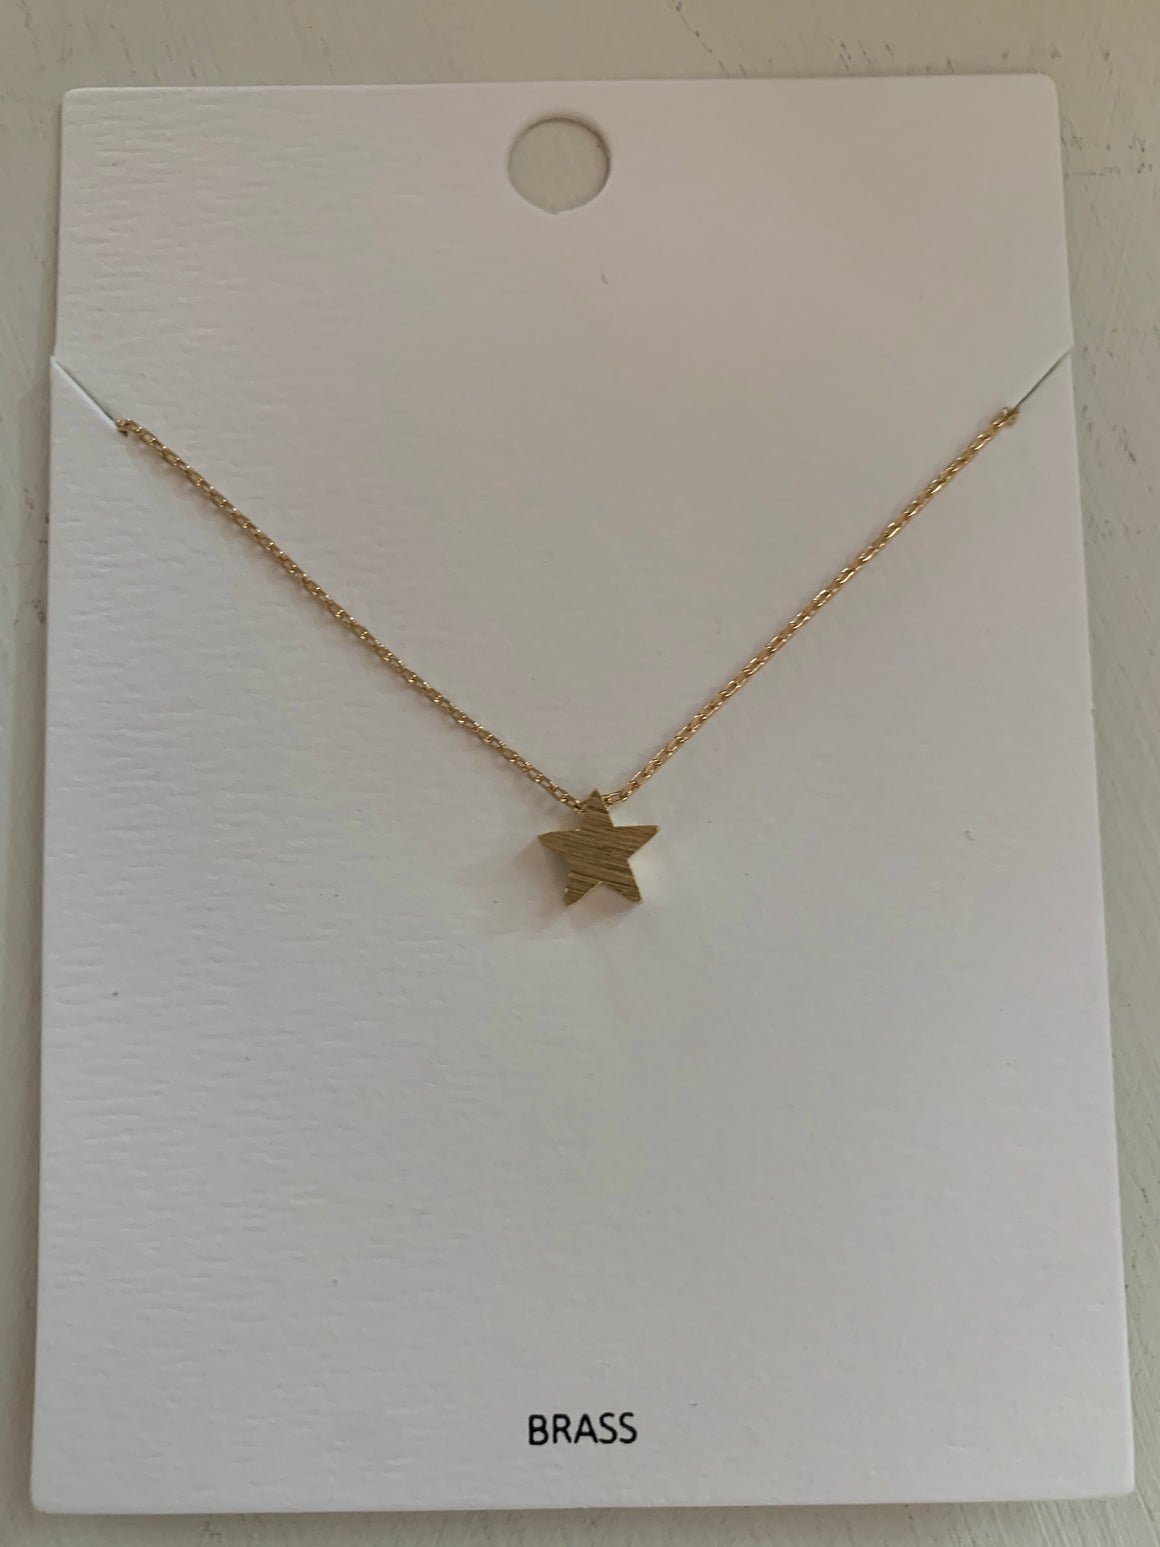 Star charm necklace with a satin gold finish.